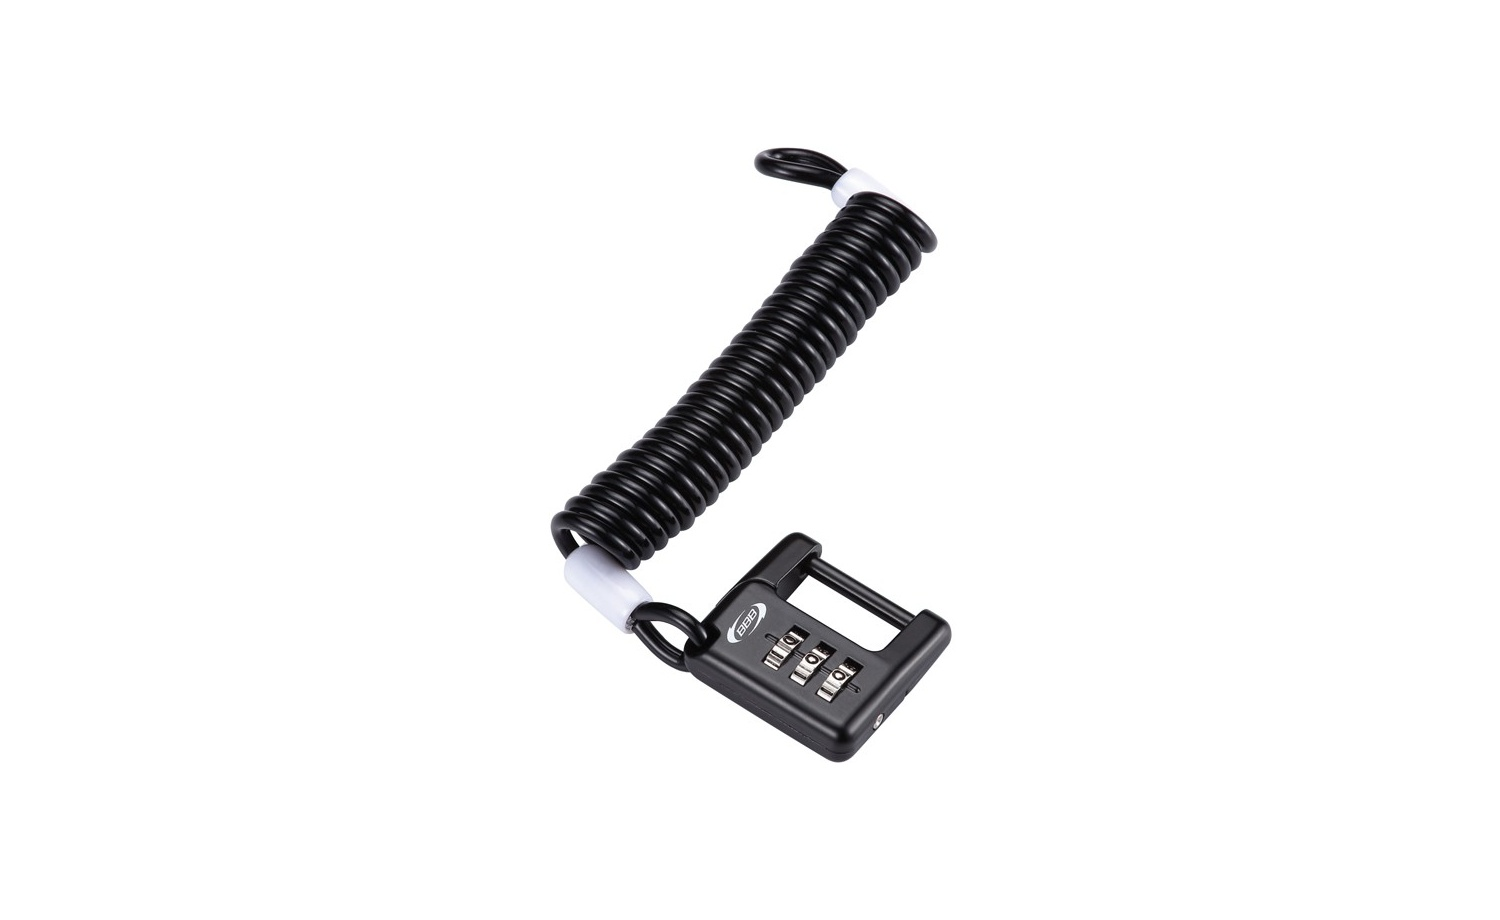 Scooter lock BBB BBL-52 MicroSafe